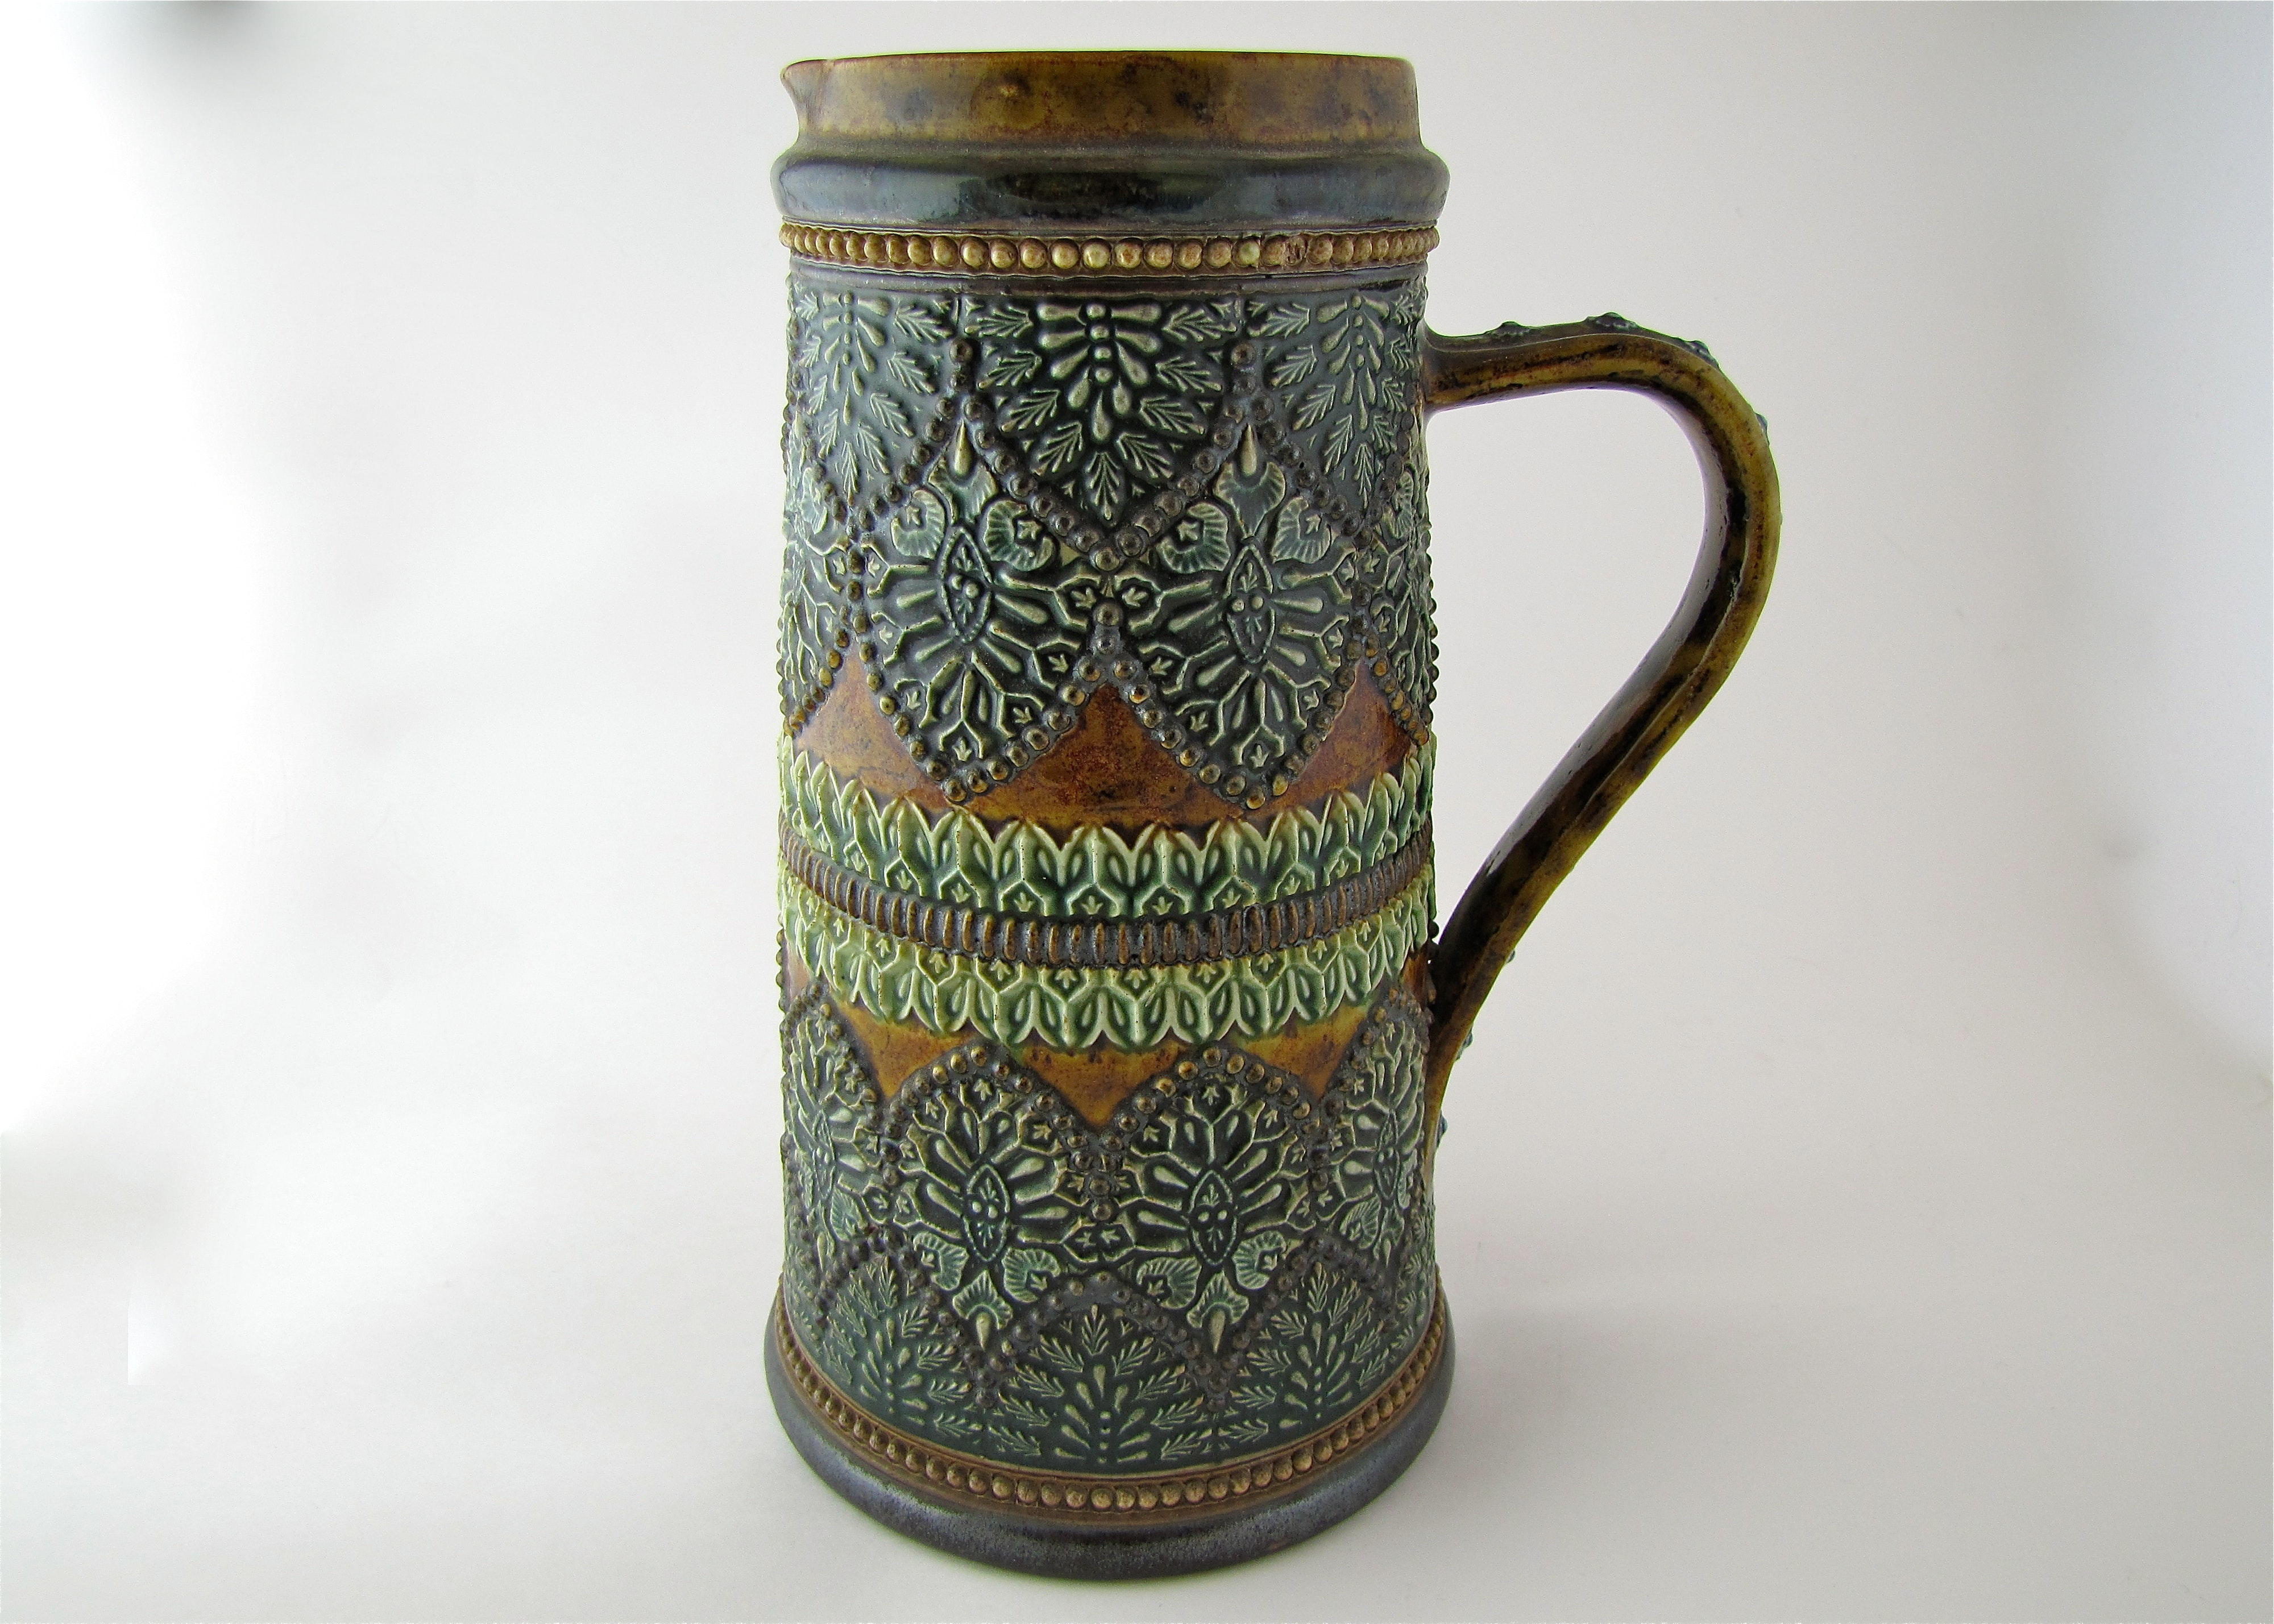 1800's Doulton Lambeth Lemonade Pitcher Signed And Marked By Emma Schute 1882